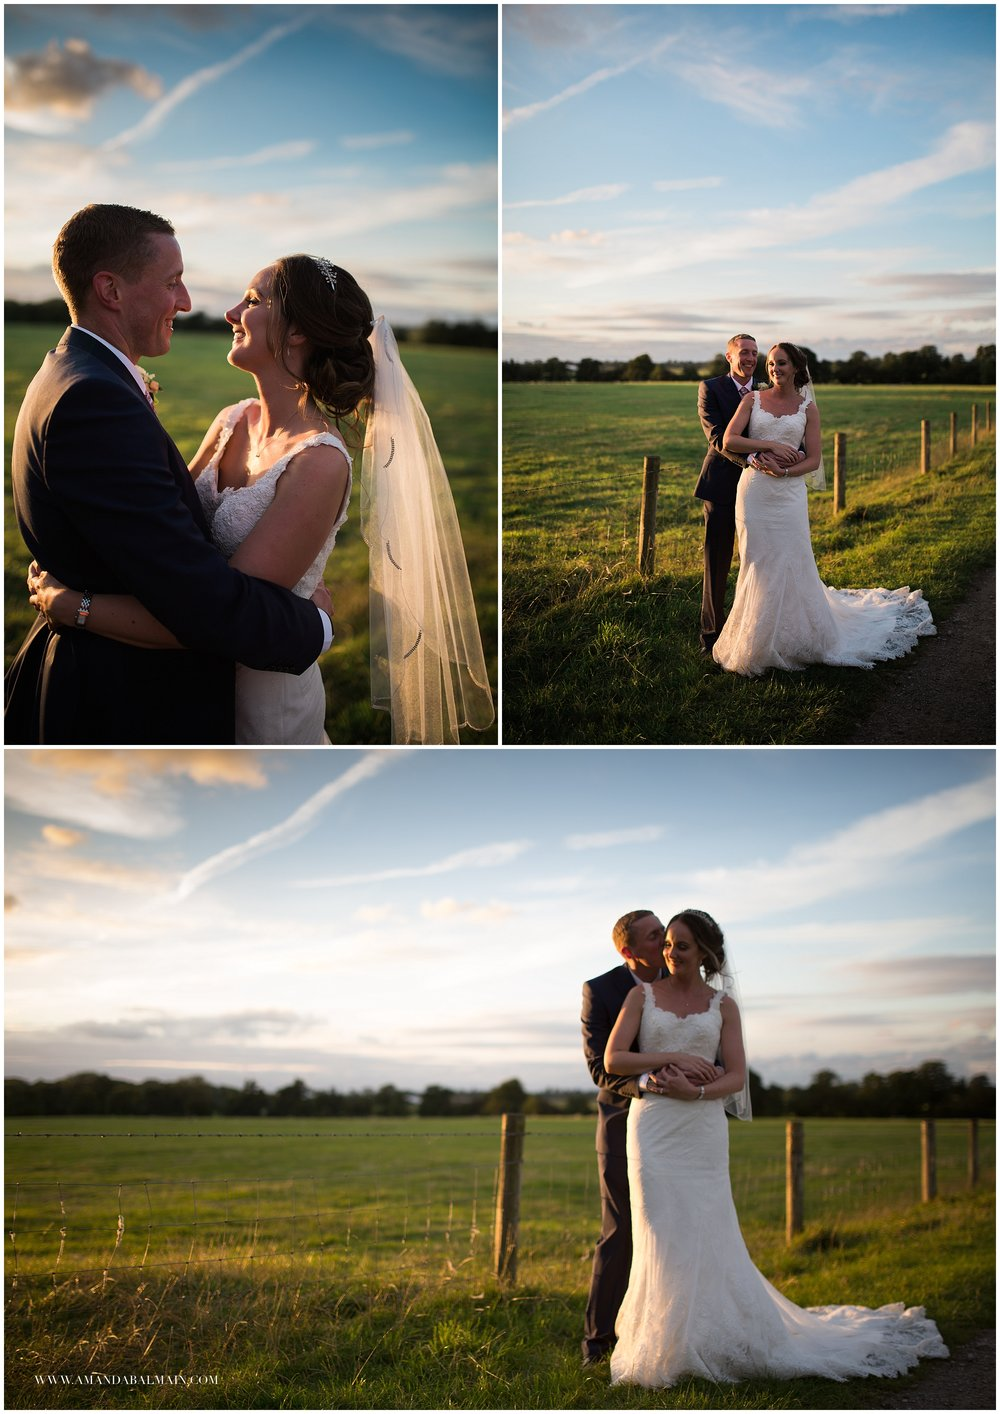 We walked a short way up the drive and across the road for a few private moments with the sunset. The sky was amazing at that time of day and I love these shots.